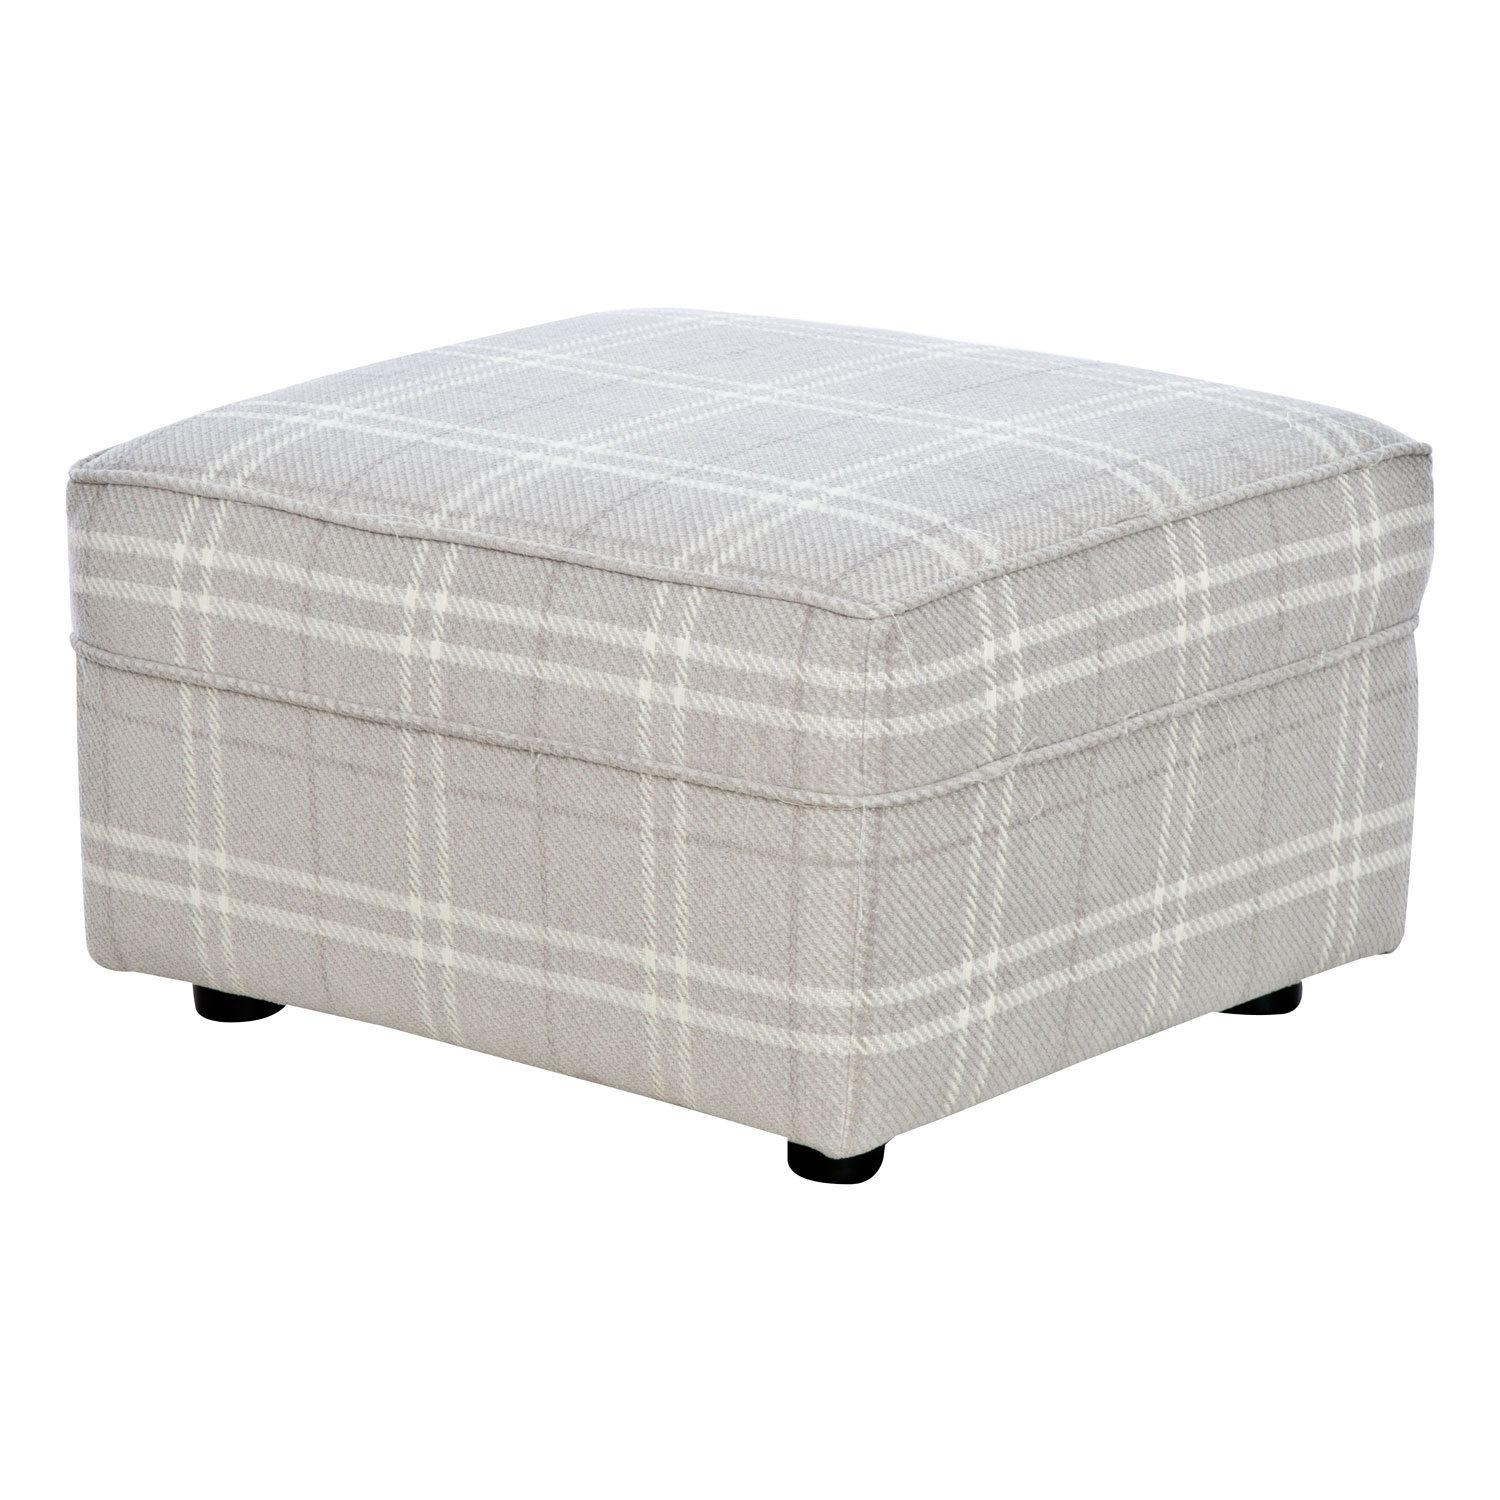 Image of Casa Georgia Fabric Footstool